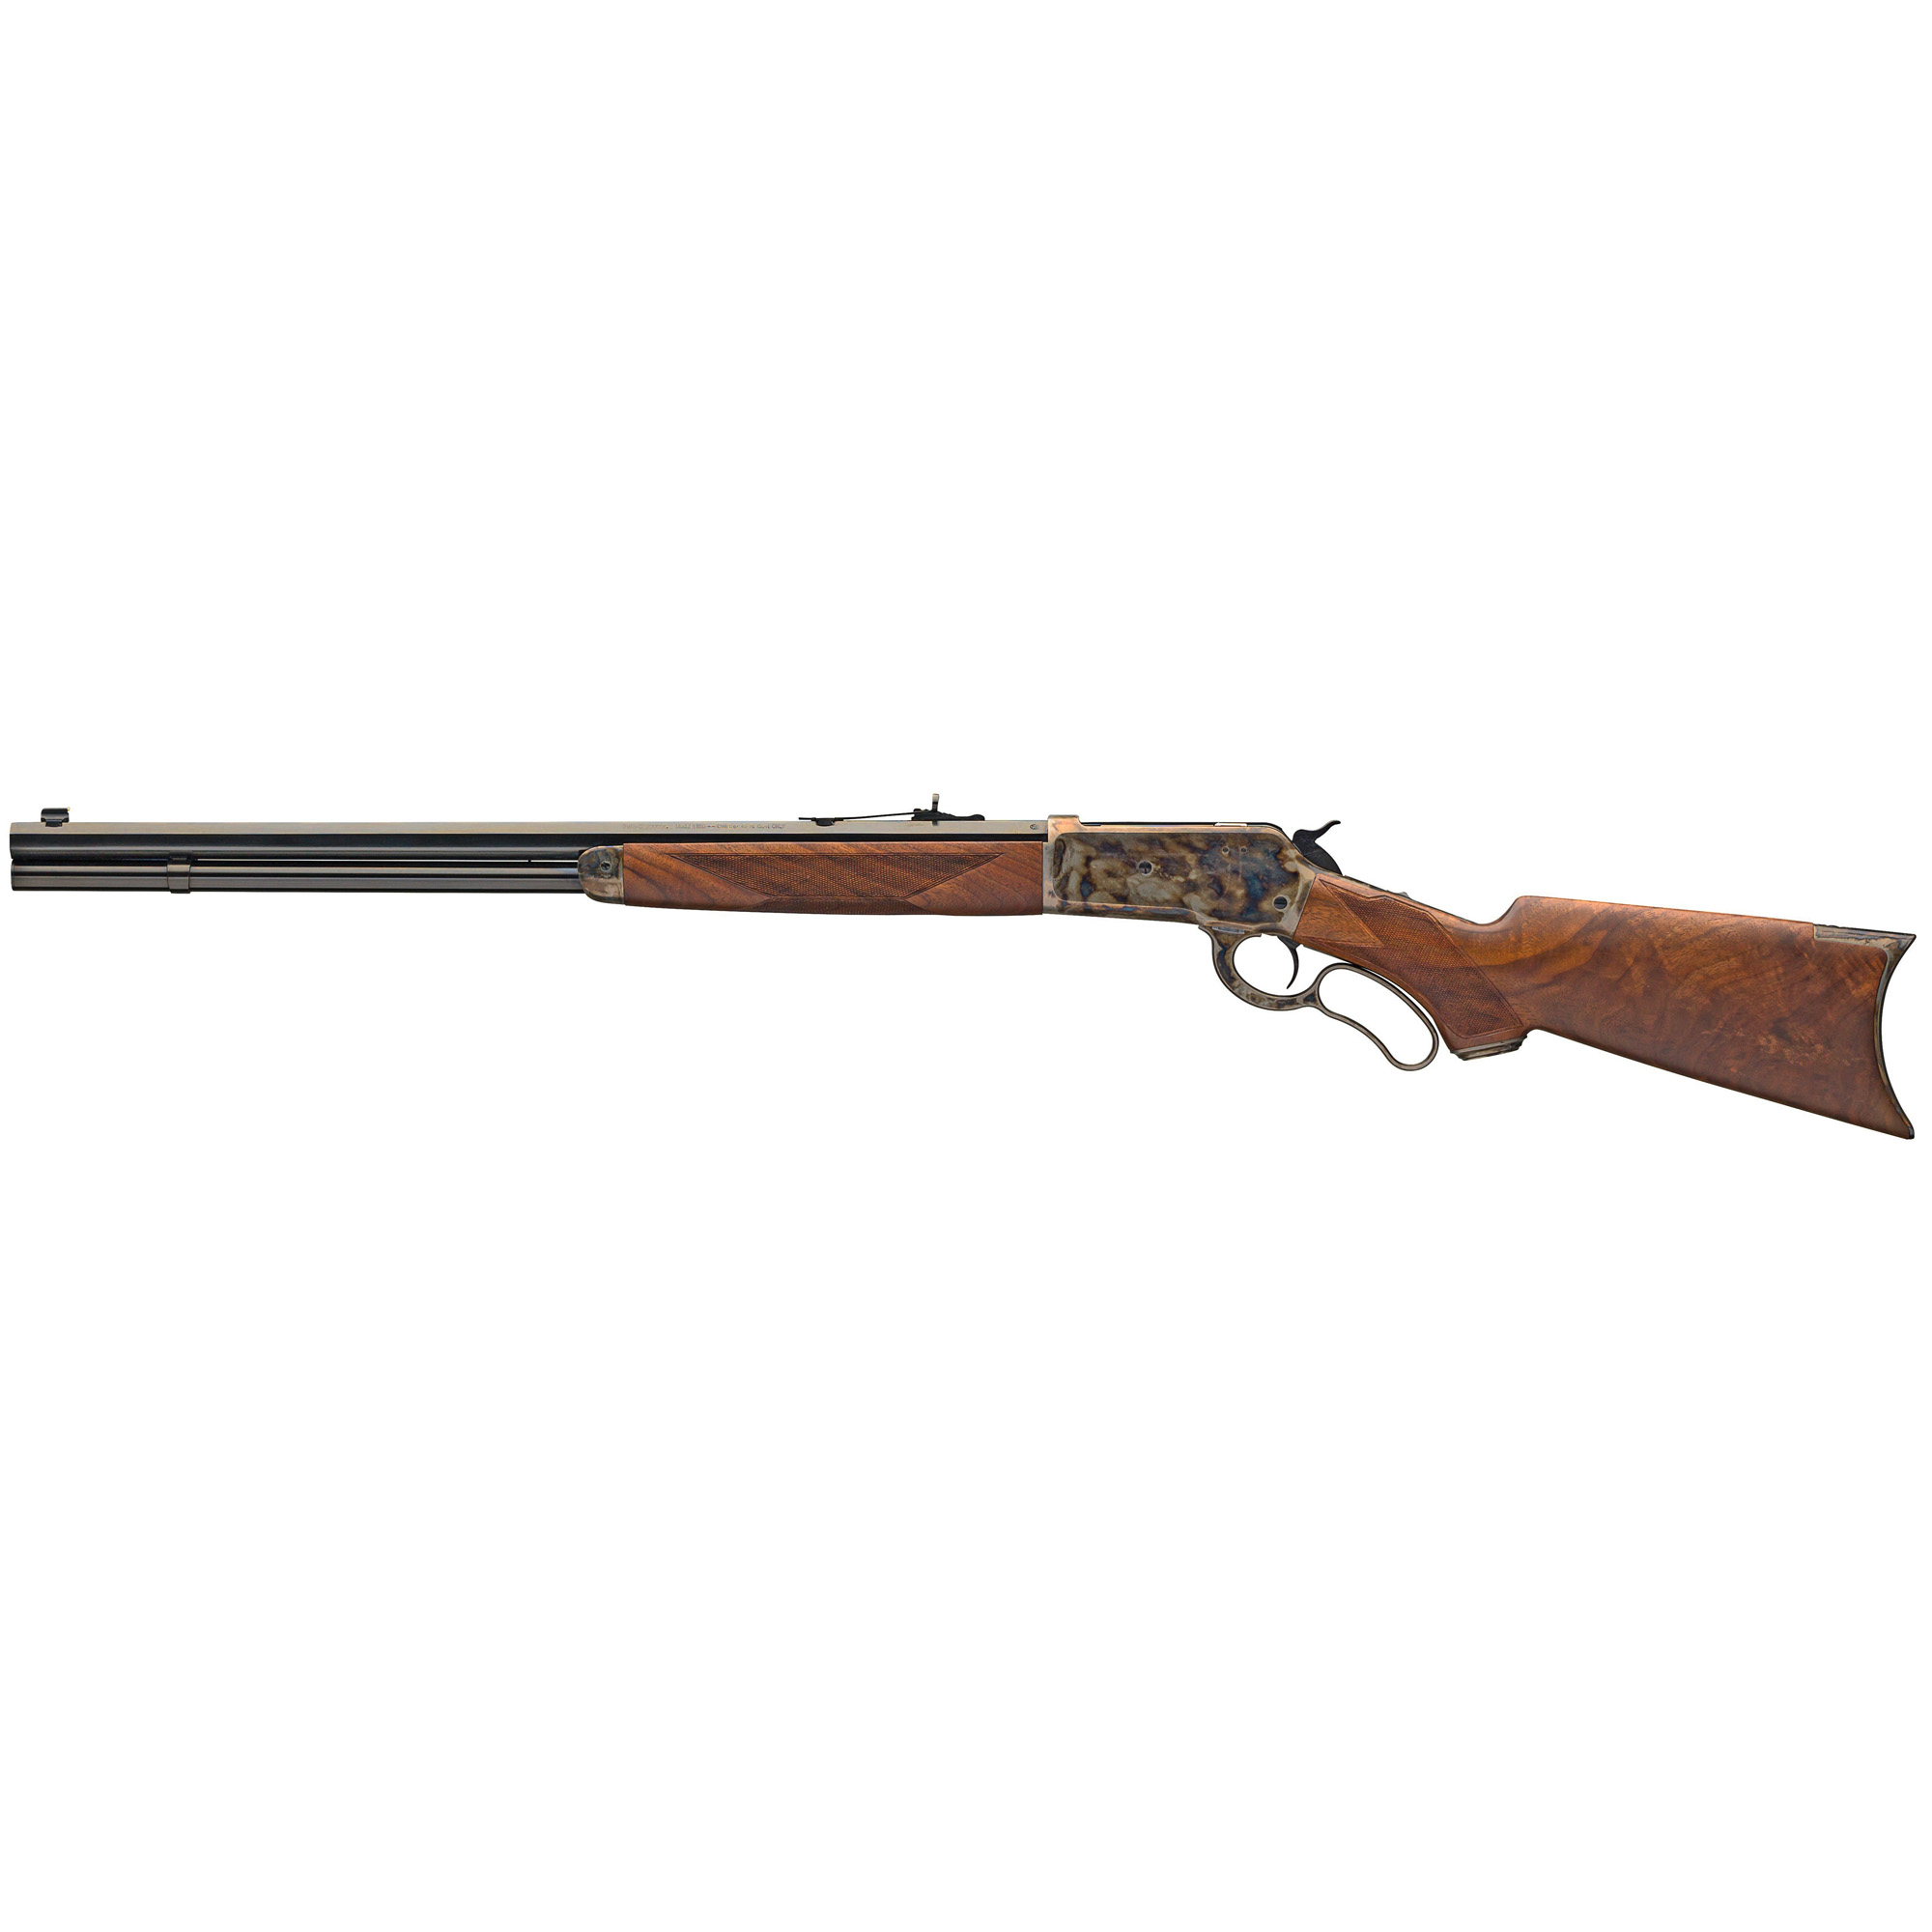 With the introduction of the Winchester Model 1886 the world of lever actions was changed forever. No previous lever action ever handled as well. No previous lever action was as strong. No other lever action ever offered chamberings in such powerful cartridges.